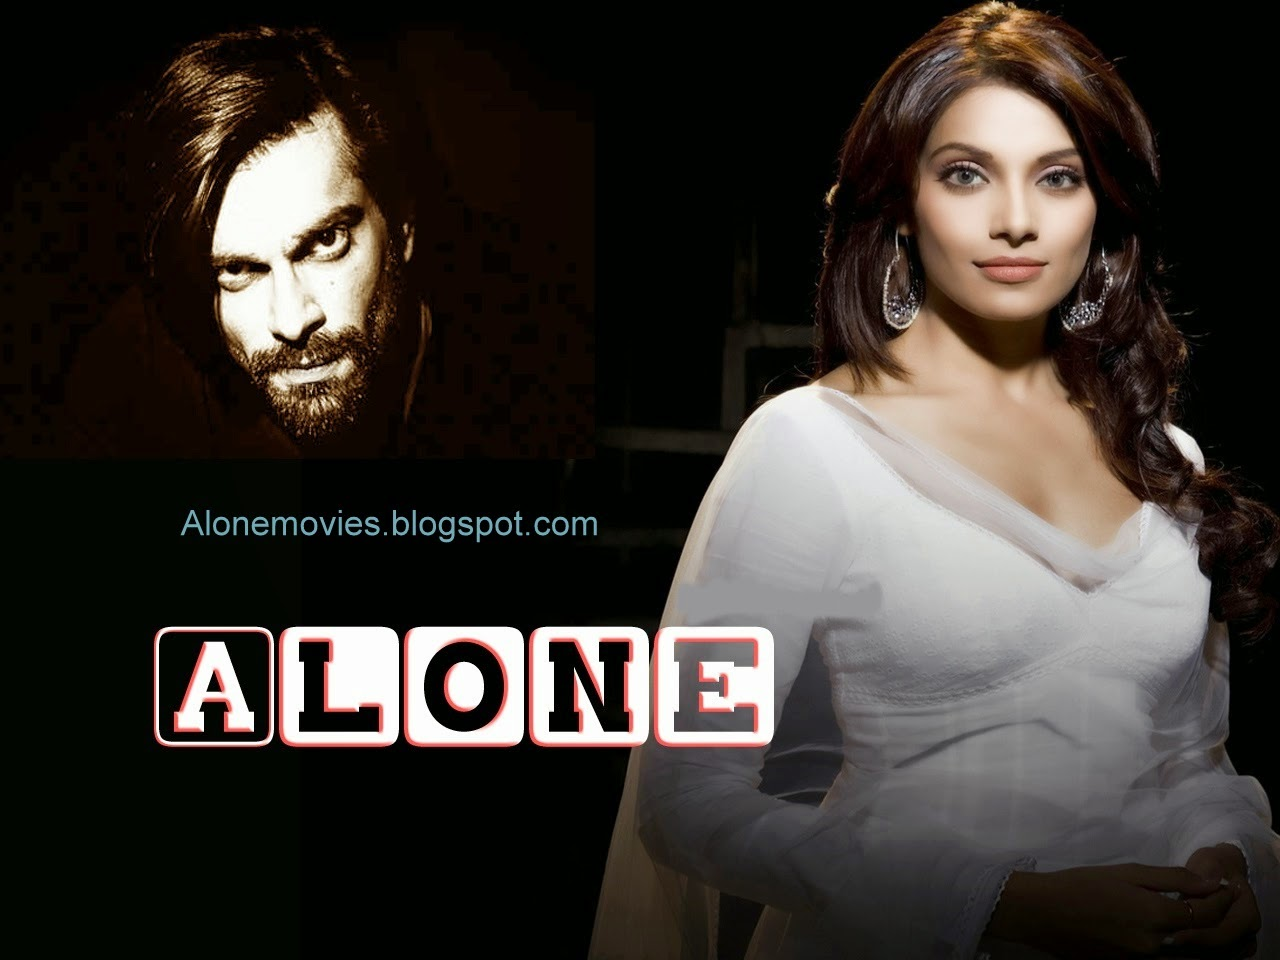 download alone movies full hd qulaity and full movies ~ alonemovies